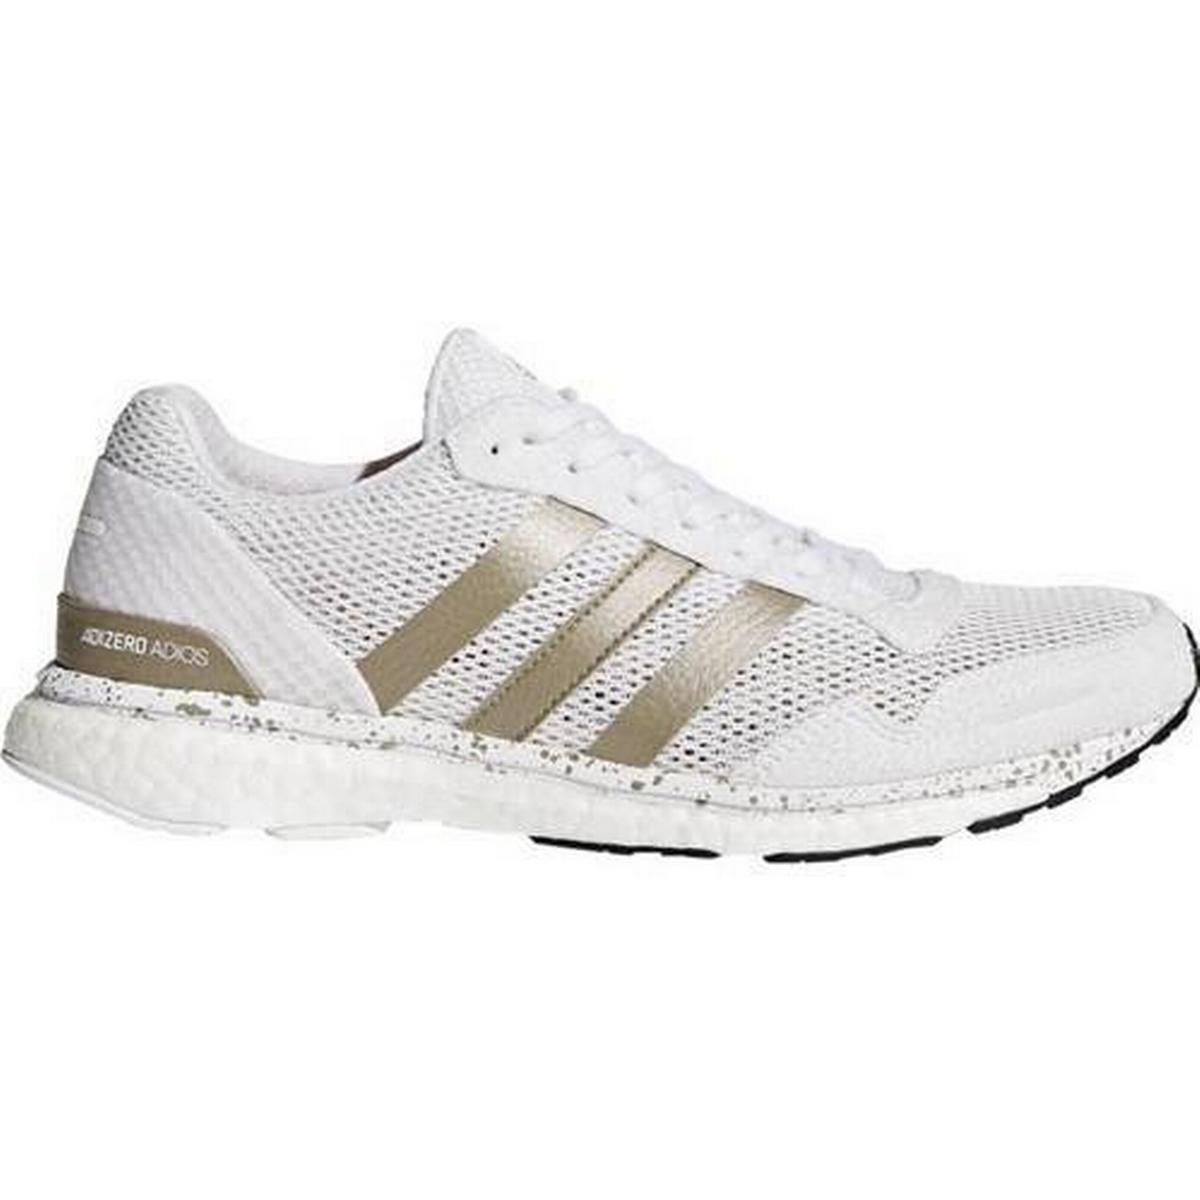 Footshop Adidas X Undefeated Ultraboost Black White for men